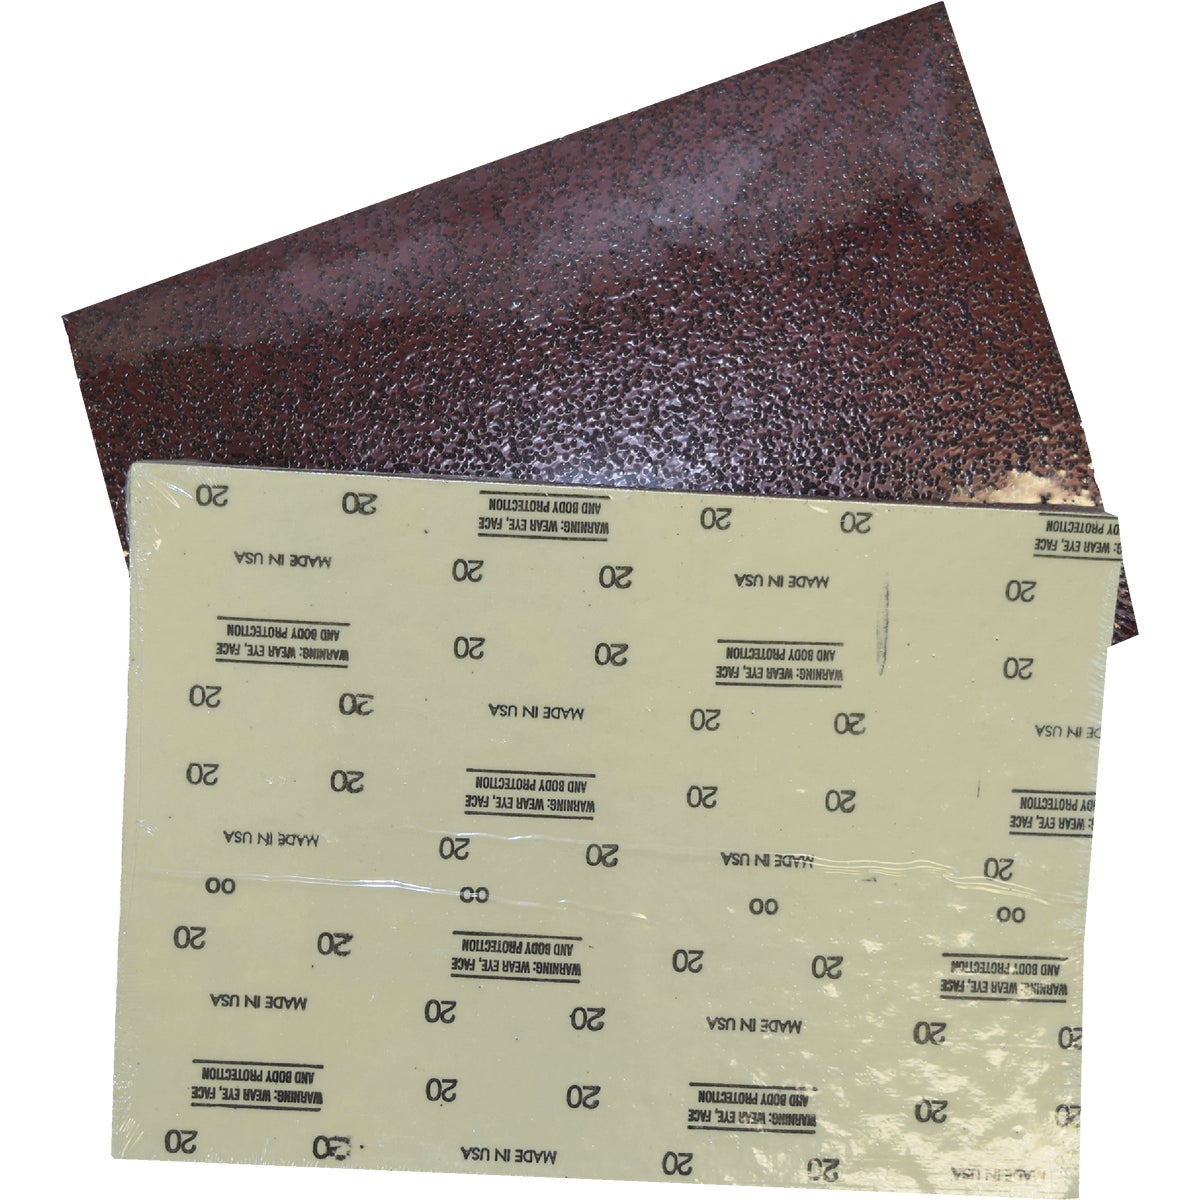 12X18 60G SANDING SHEET - 206-834060 by Virginia Abrasives